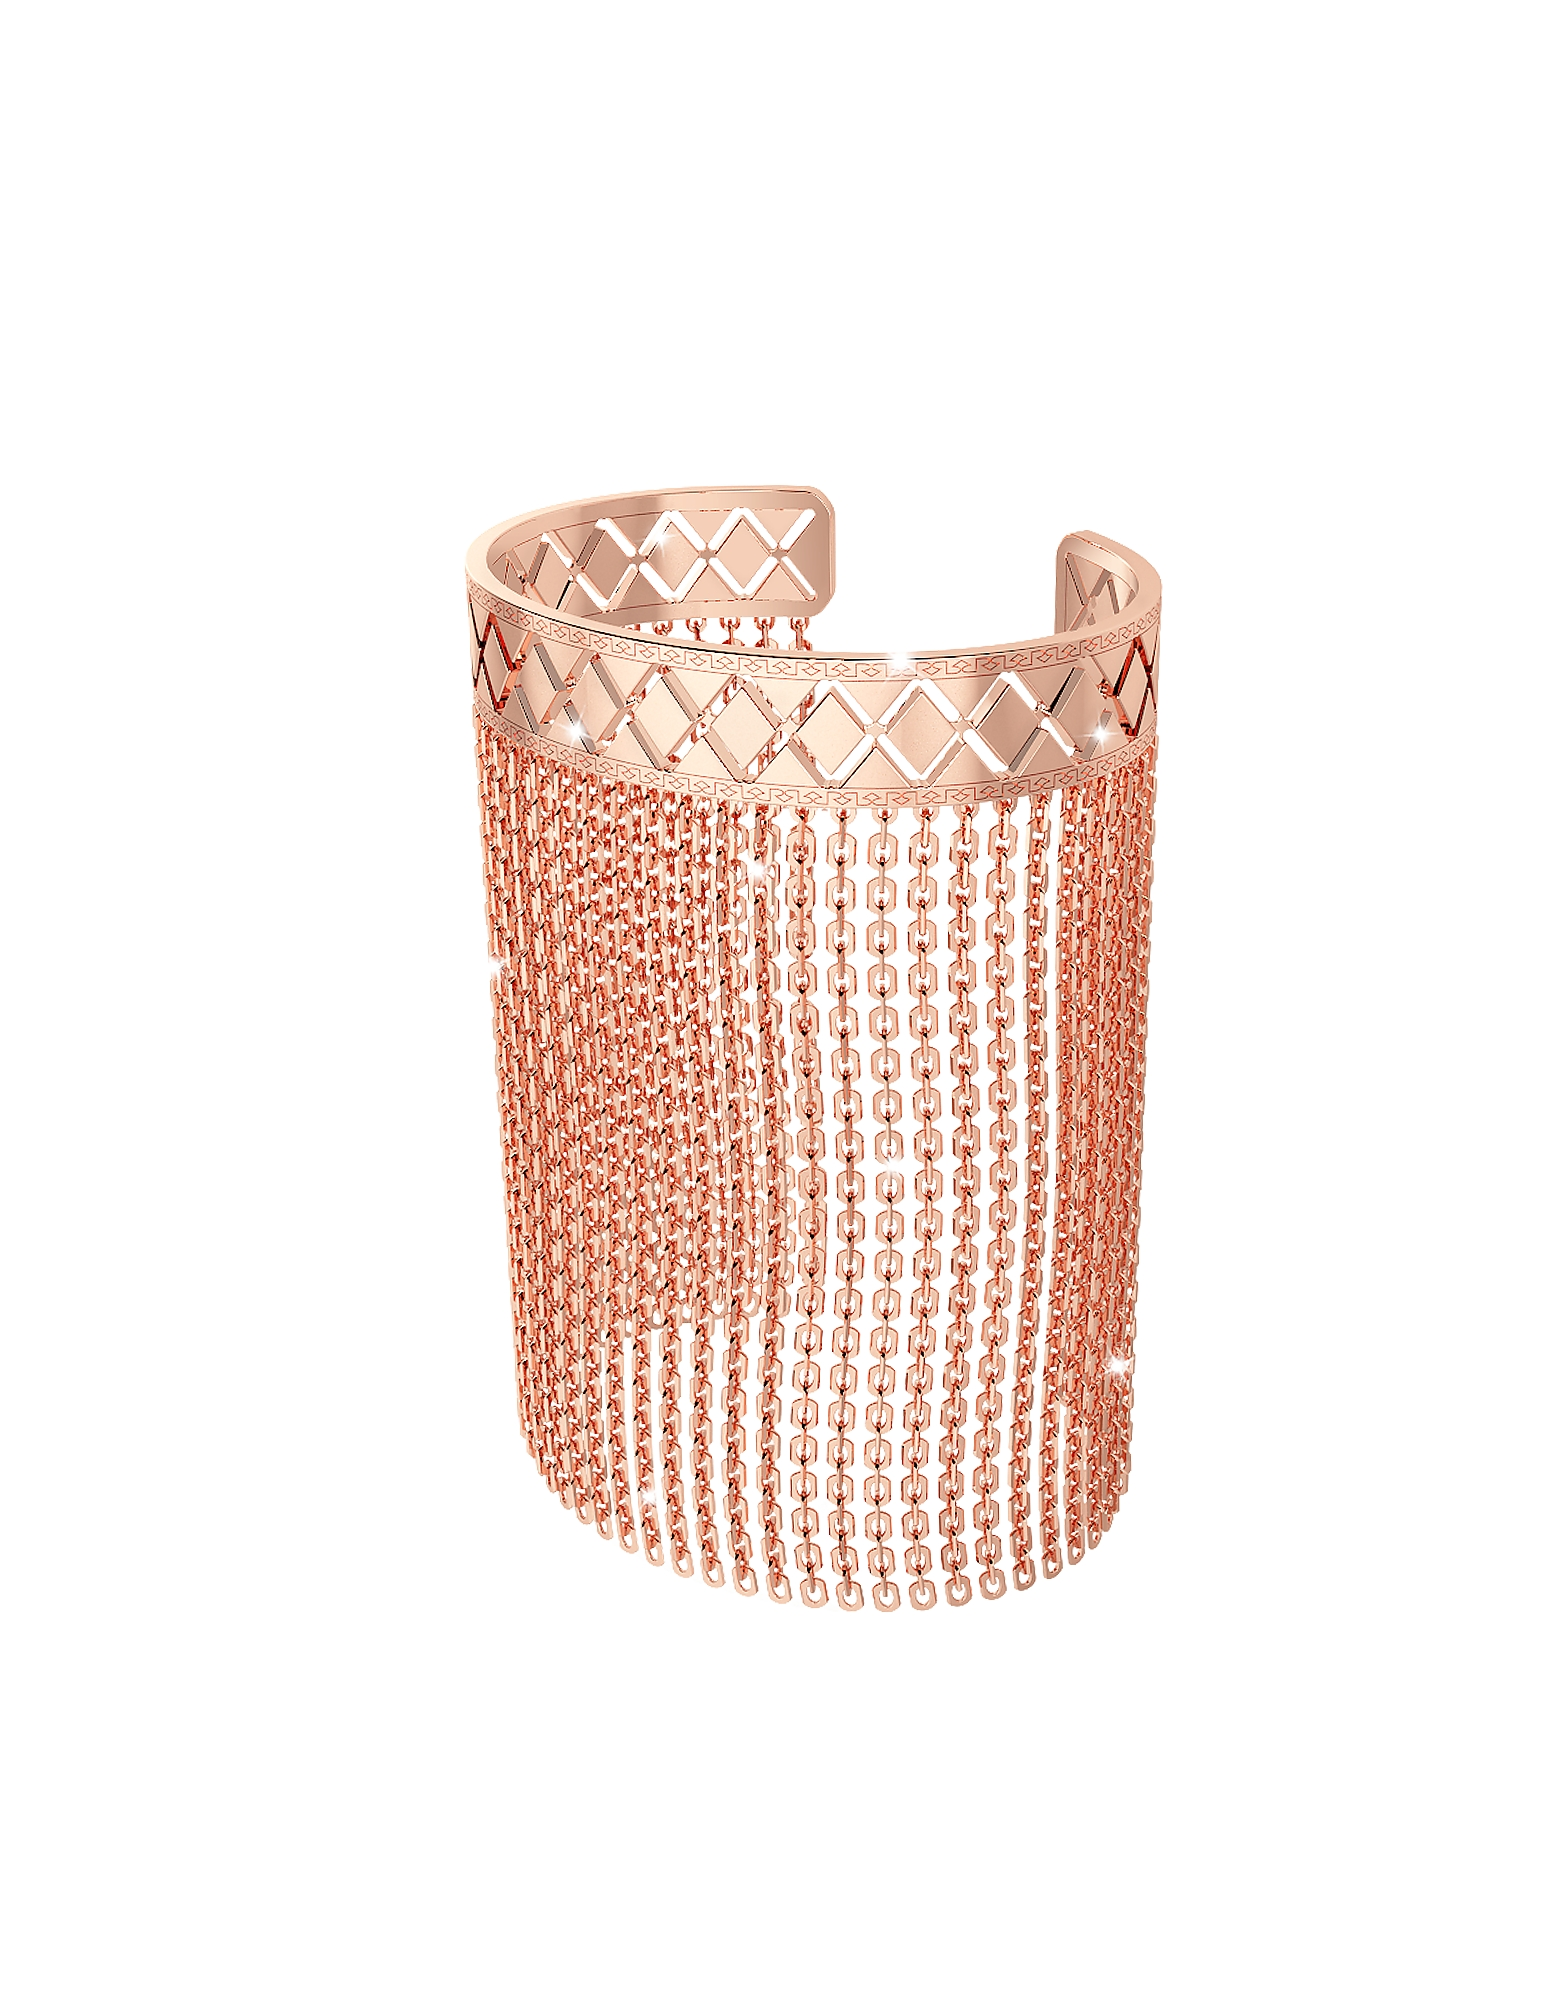 Rebecca Bracelets, Melrose Rose Gold Over Bronze Mesh Bracelet